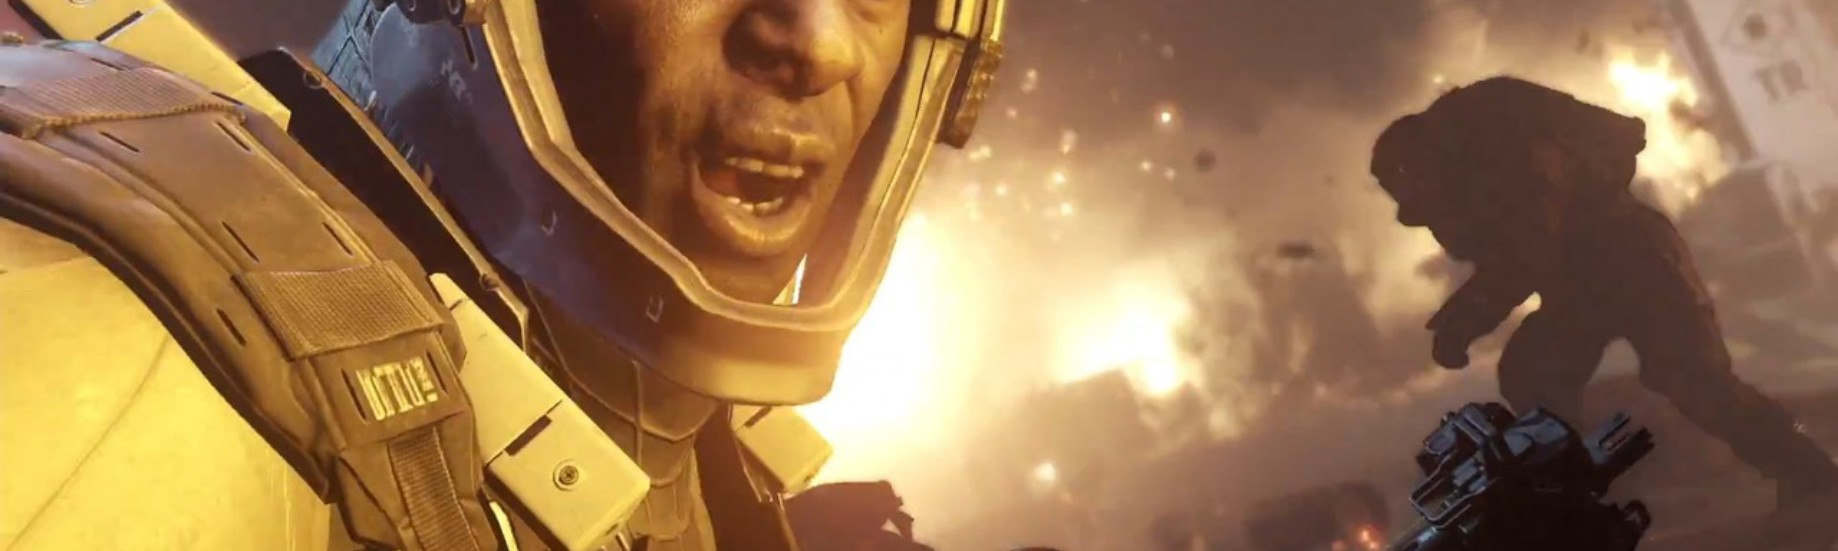 Call of Duty: Infinite Warfare' Highlights the Burdens of